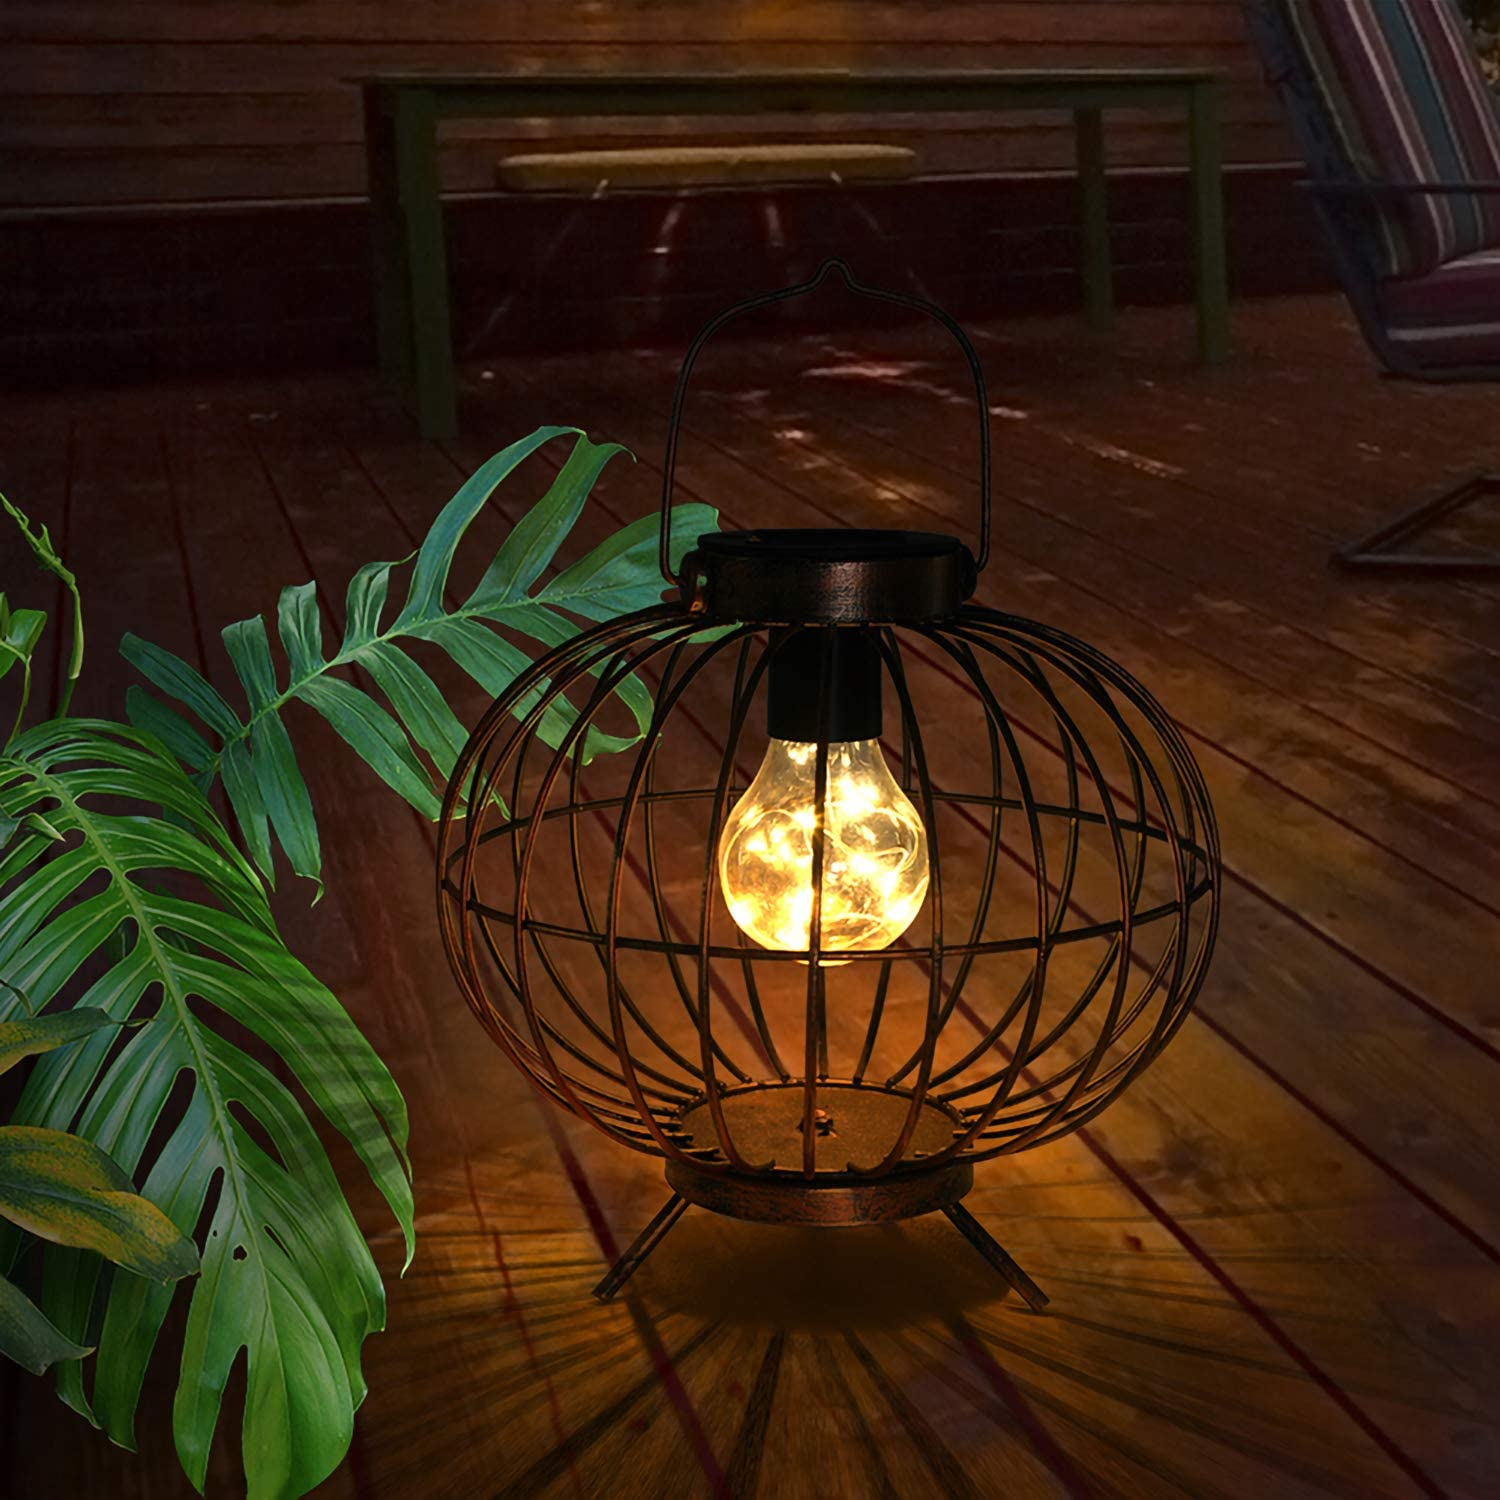 Solar Lanterns Outdoor,Hanging Solar Lights with Base Waterproof Metal Solar Table Lamp for Garden Yard Patio Pathway Decoration (Copper)